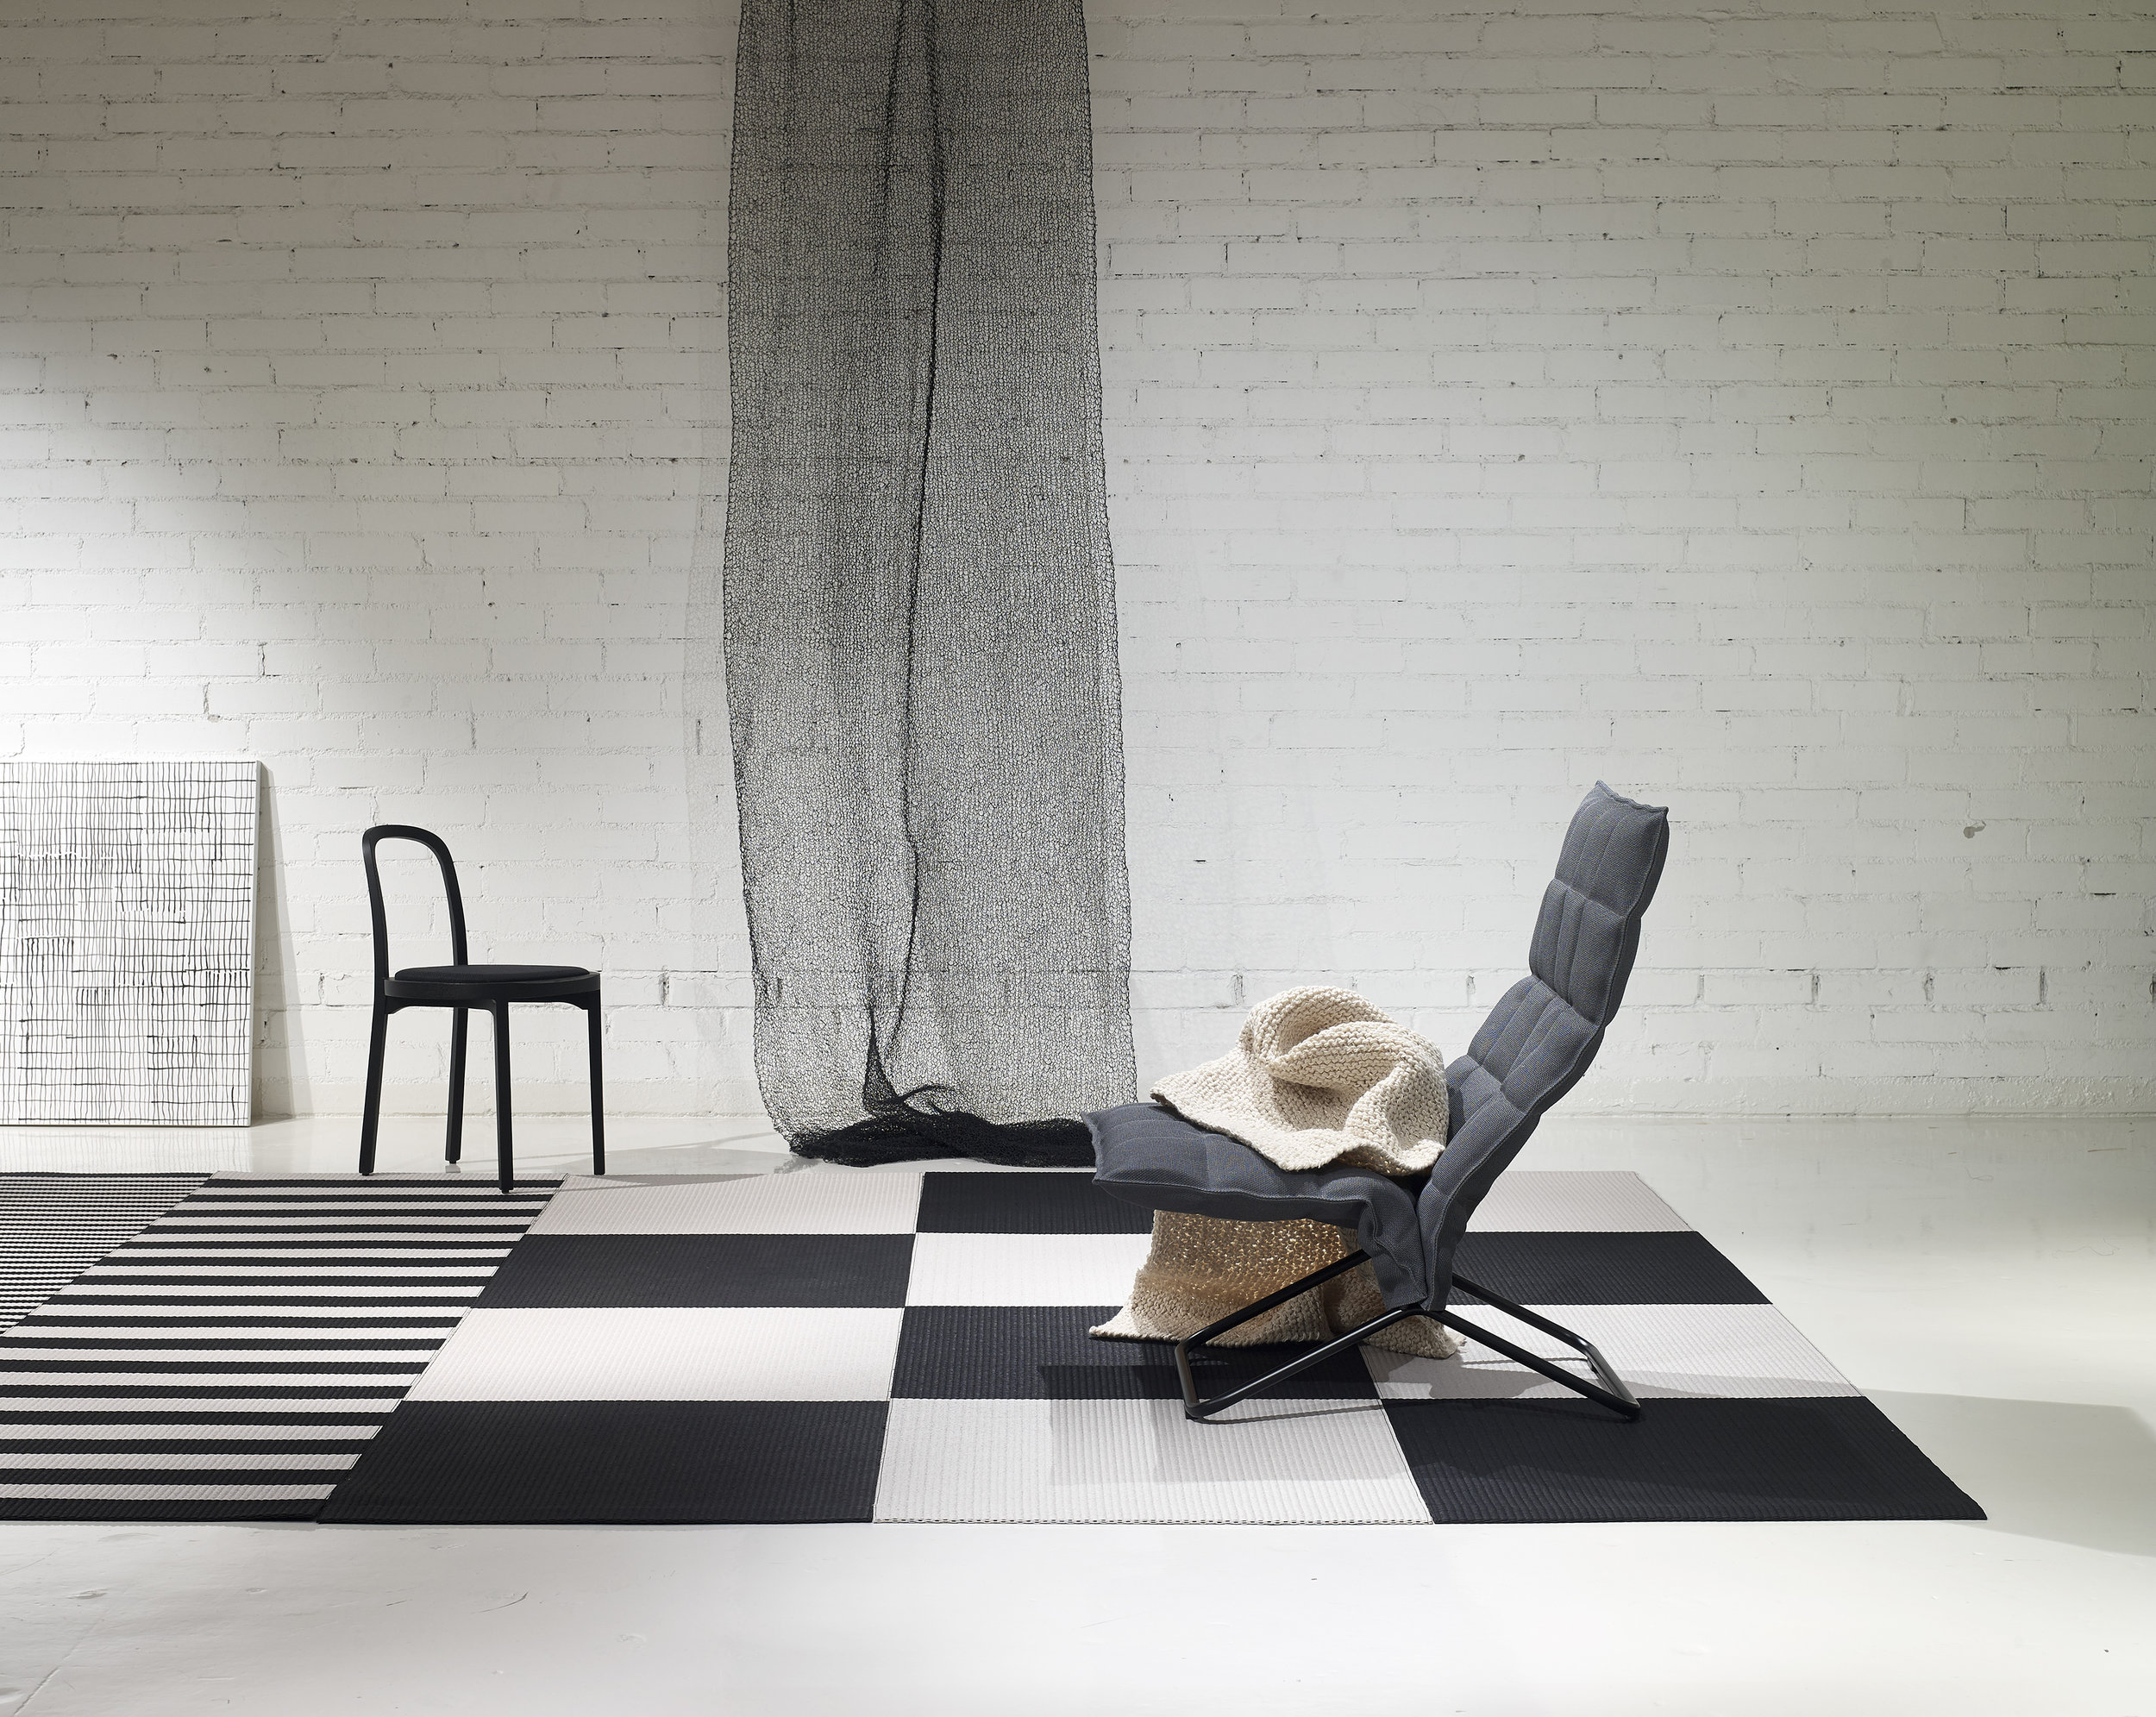 Woodnotes interior /  Squareplay  paper yarn combo with 1420915  Big Stripe  and 1190915 Stripe paper yarns black-stone, 46003  Narrow Tubular k Chair  col. graphite matt-black tubular frame, 4419 Siro+ black seat leather upholstered, 7300101 Woodwool hand knitted throw col. white and 7110902 Mesh hand knitted partition black-steel.